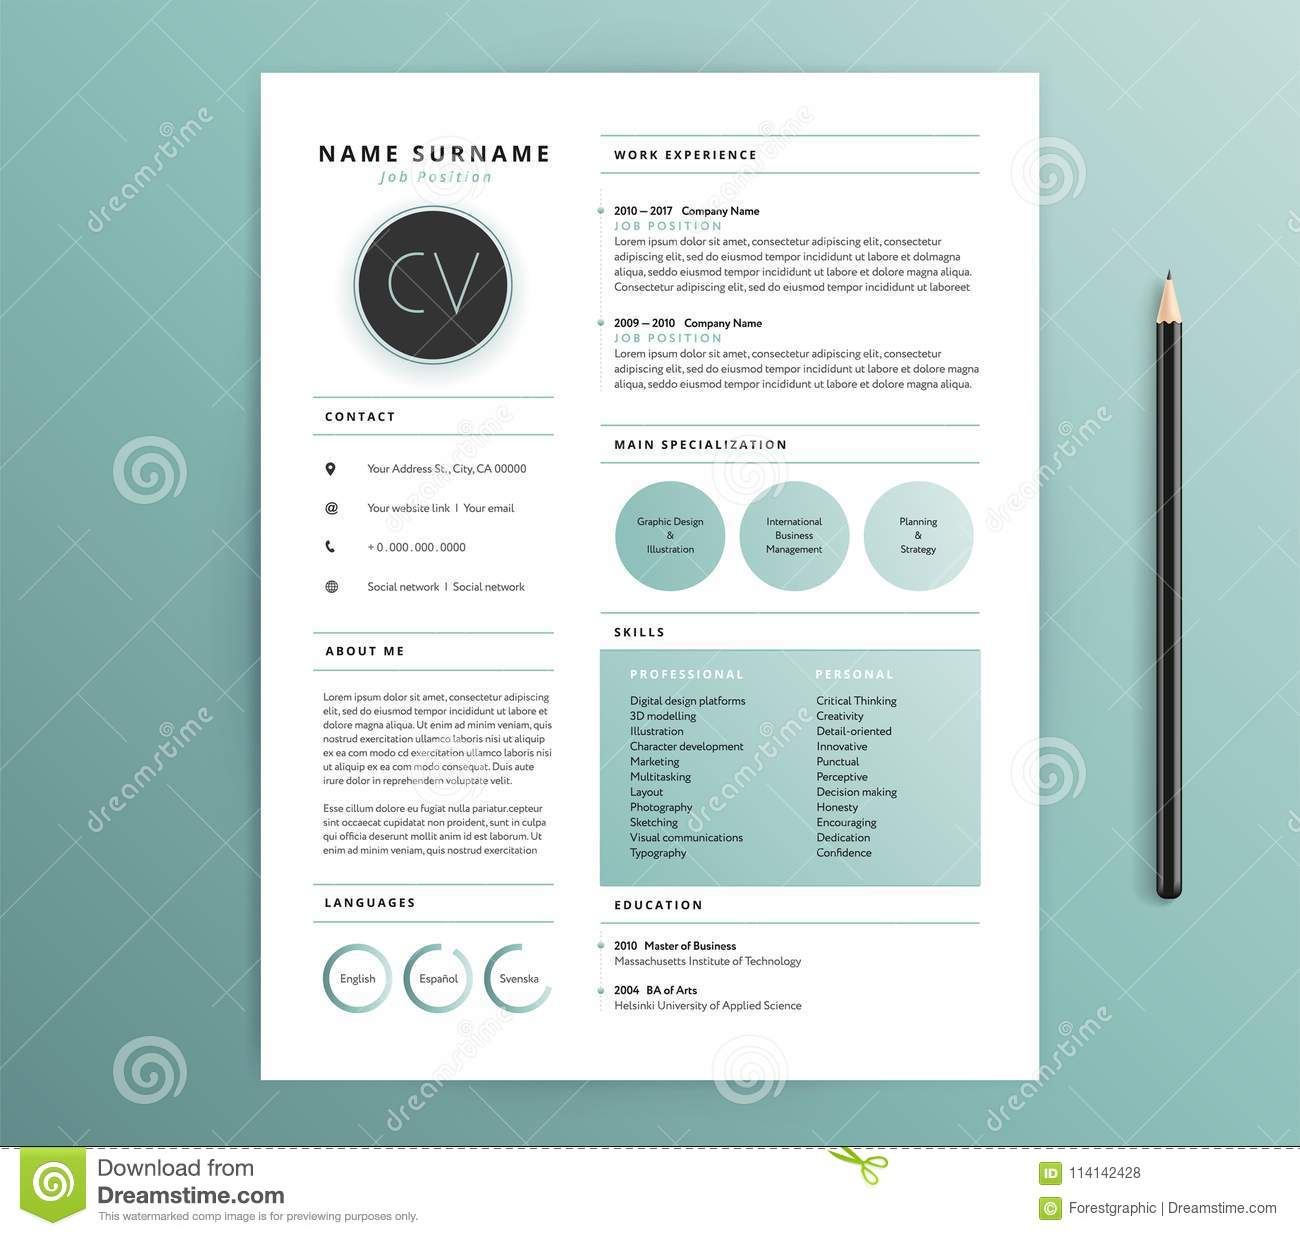 resume    cv template design - nature feel green color - vector s stock vector